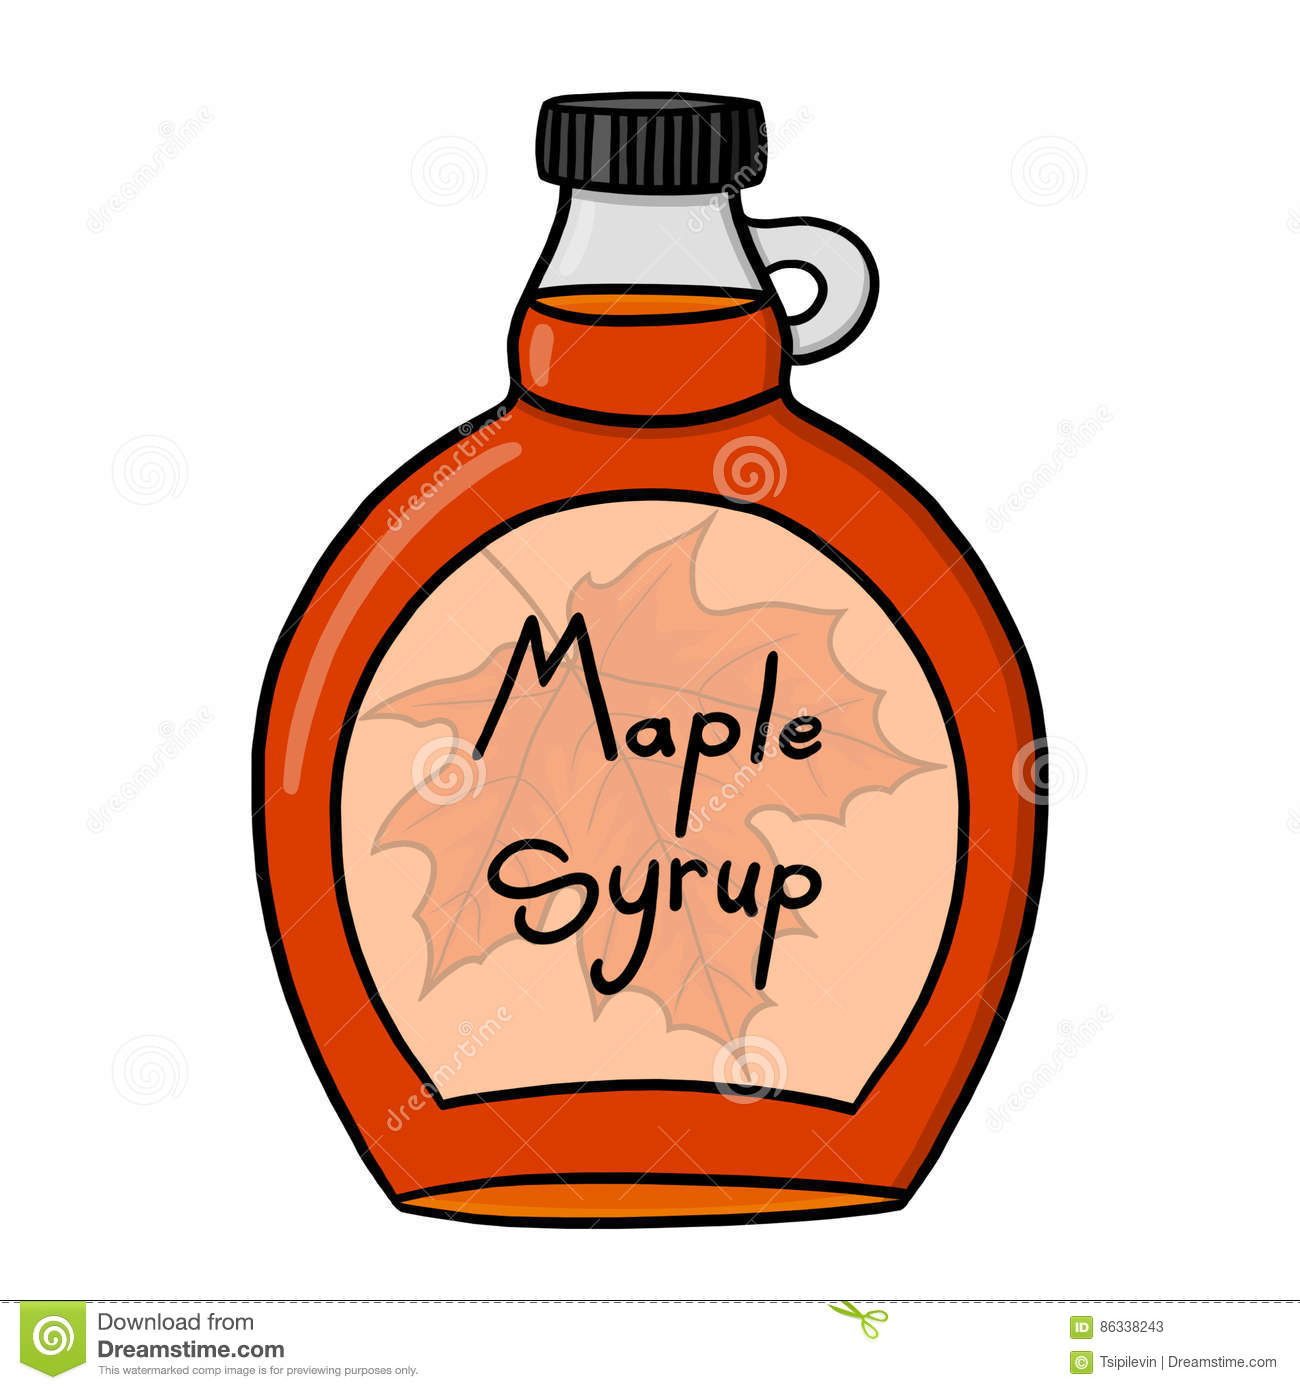 Syrup clipart jpg freeuse download Maple syrup clipart 2 » Clipart Station jpg freeuse download